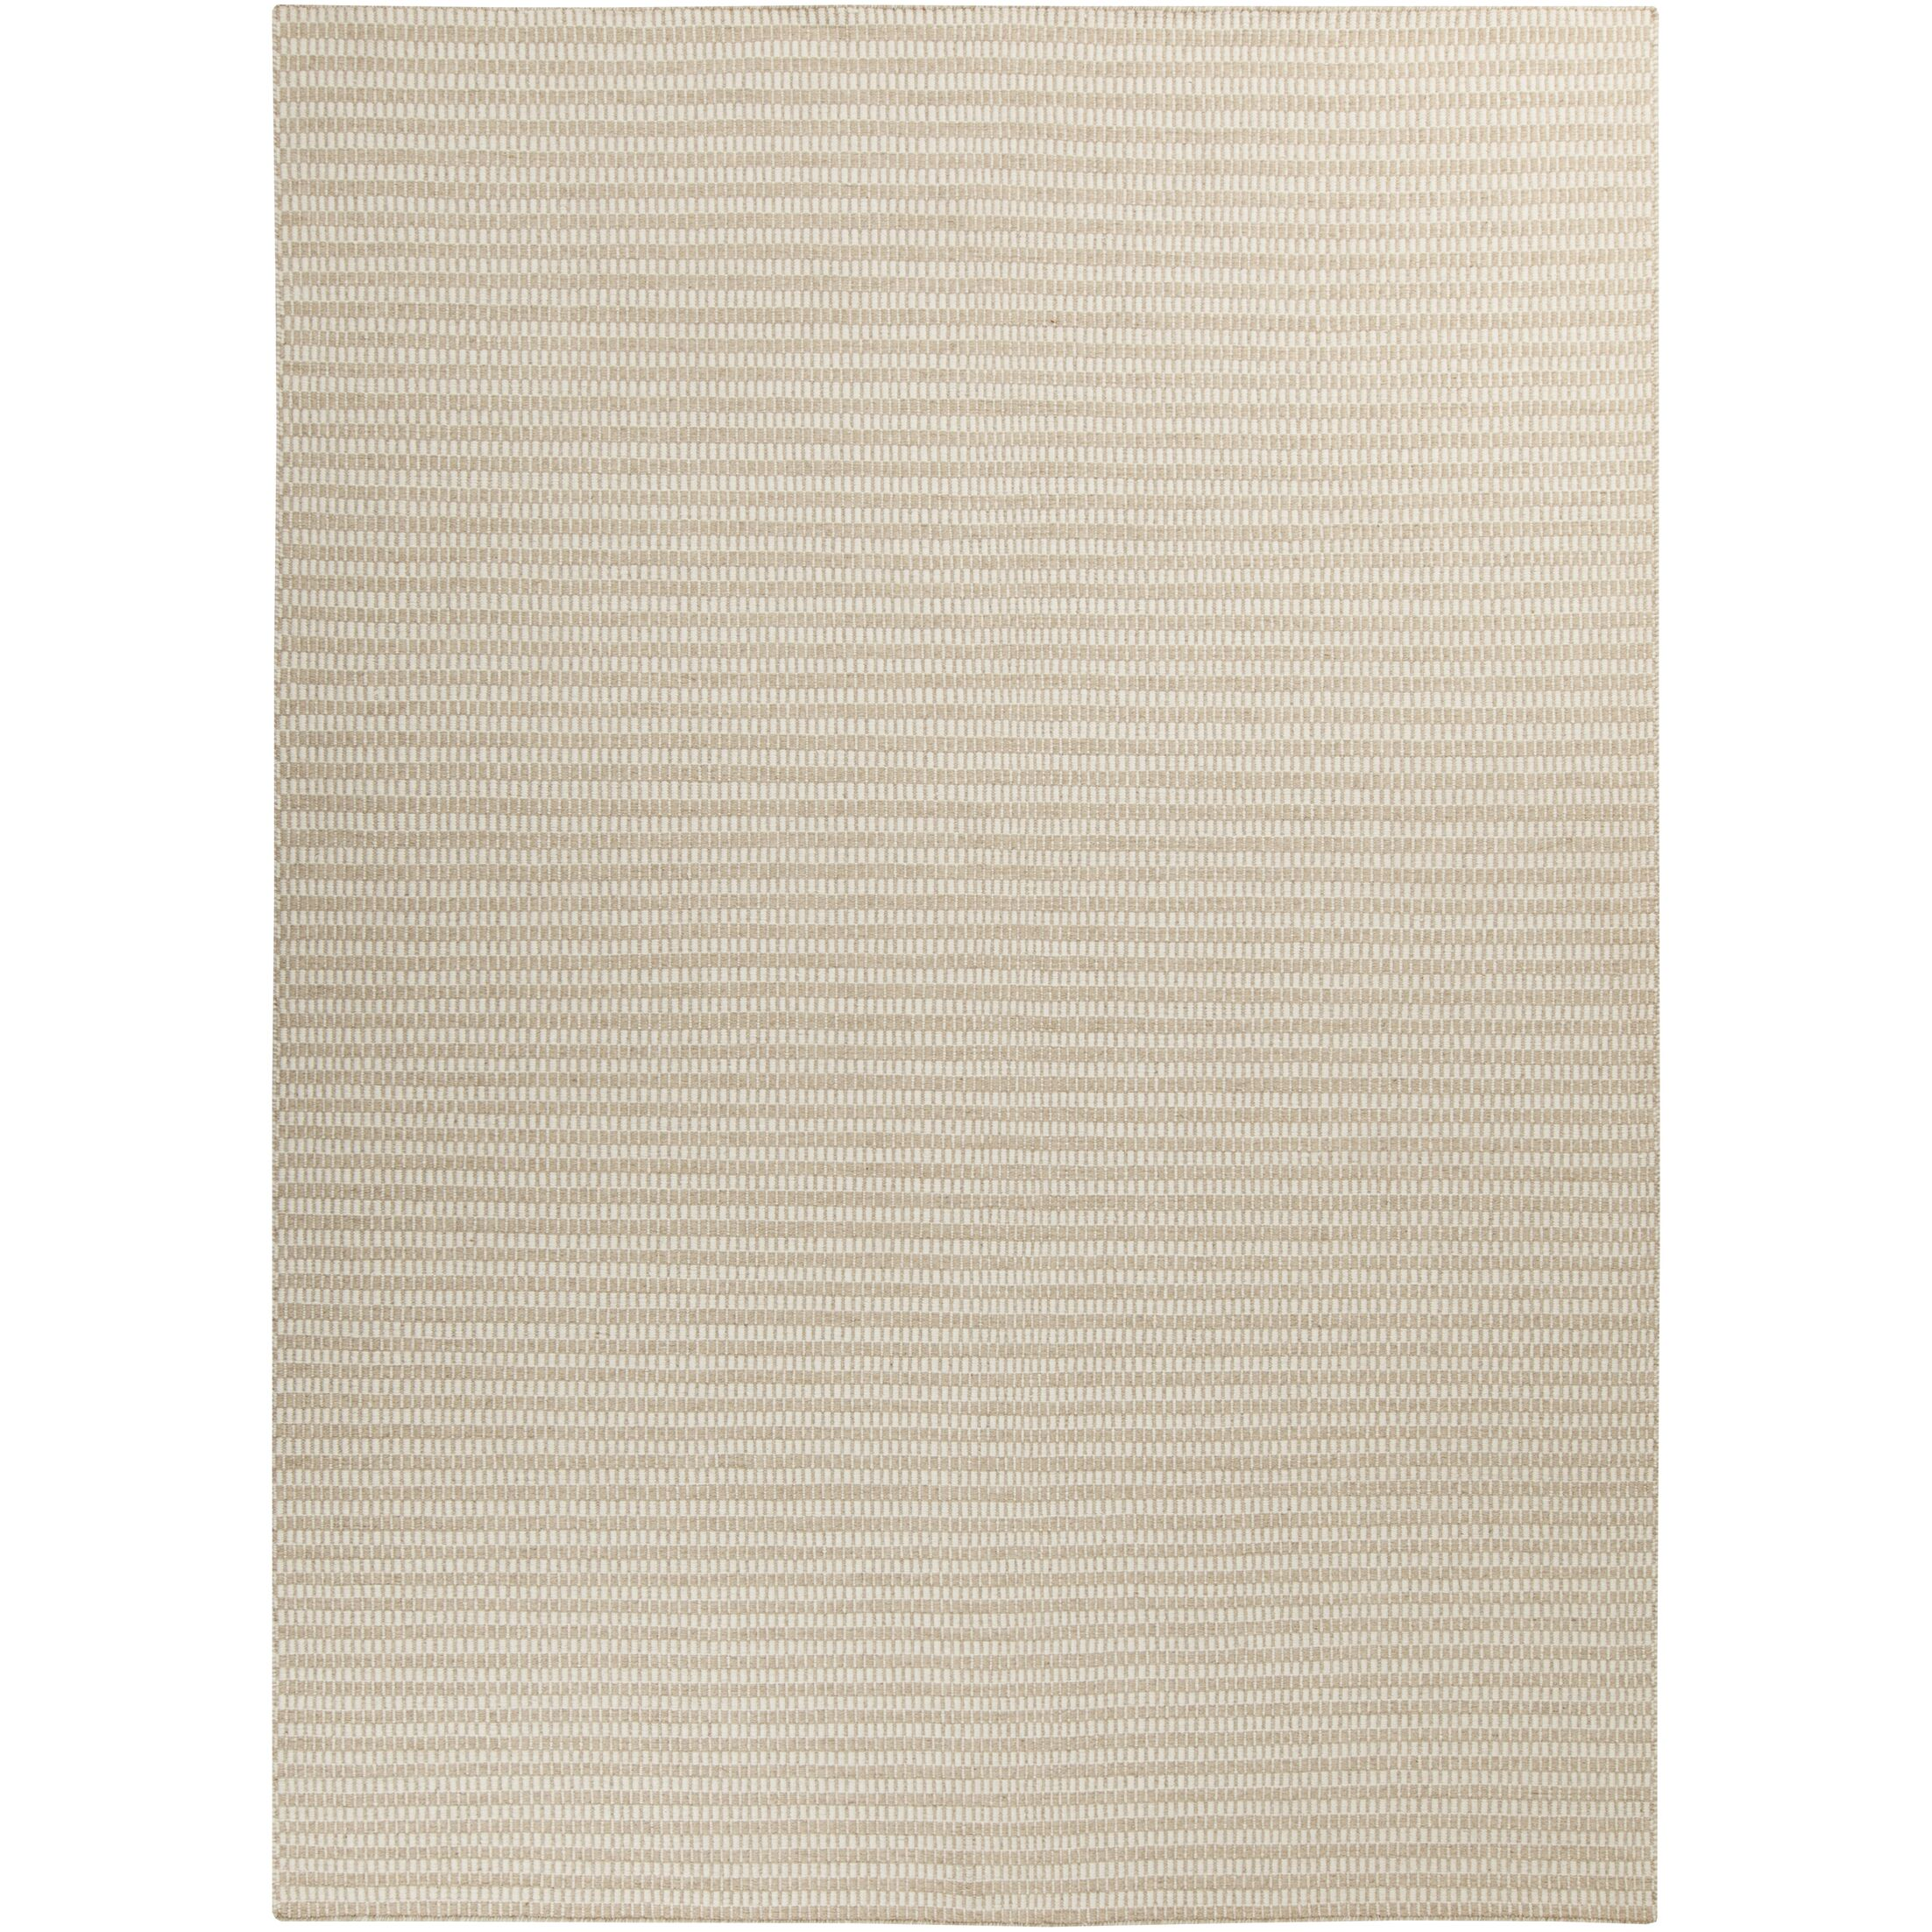 Walton Winter White/Desert Sand Striped Rug Rug Size: Rectangle 8' x 11'